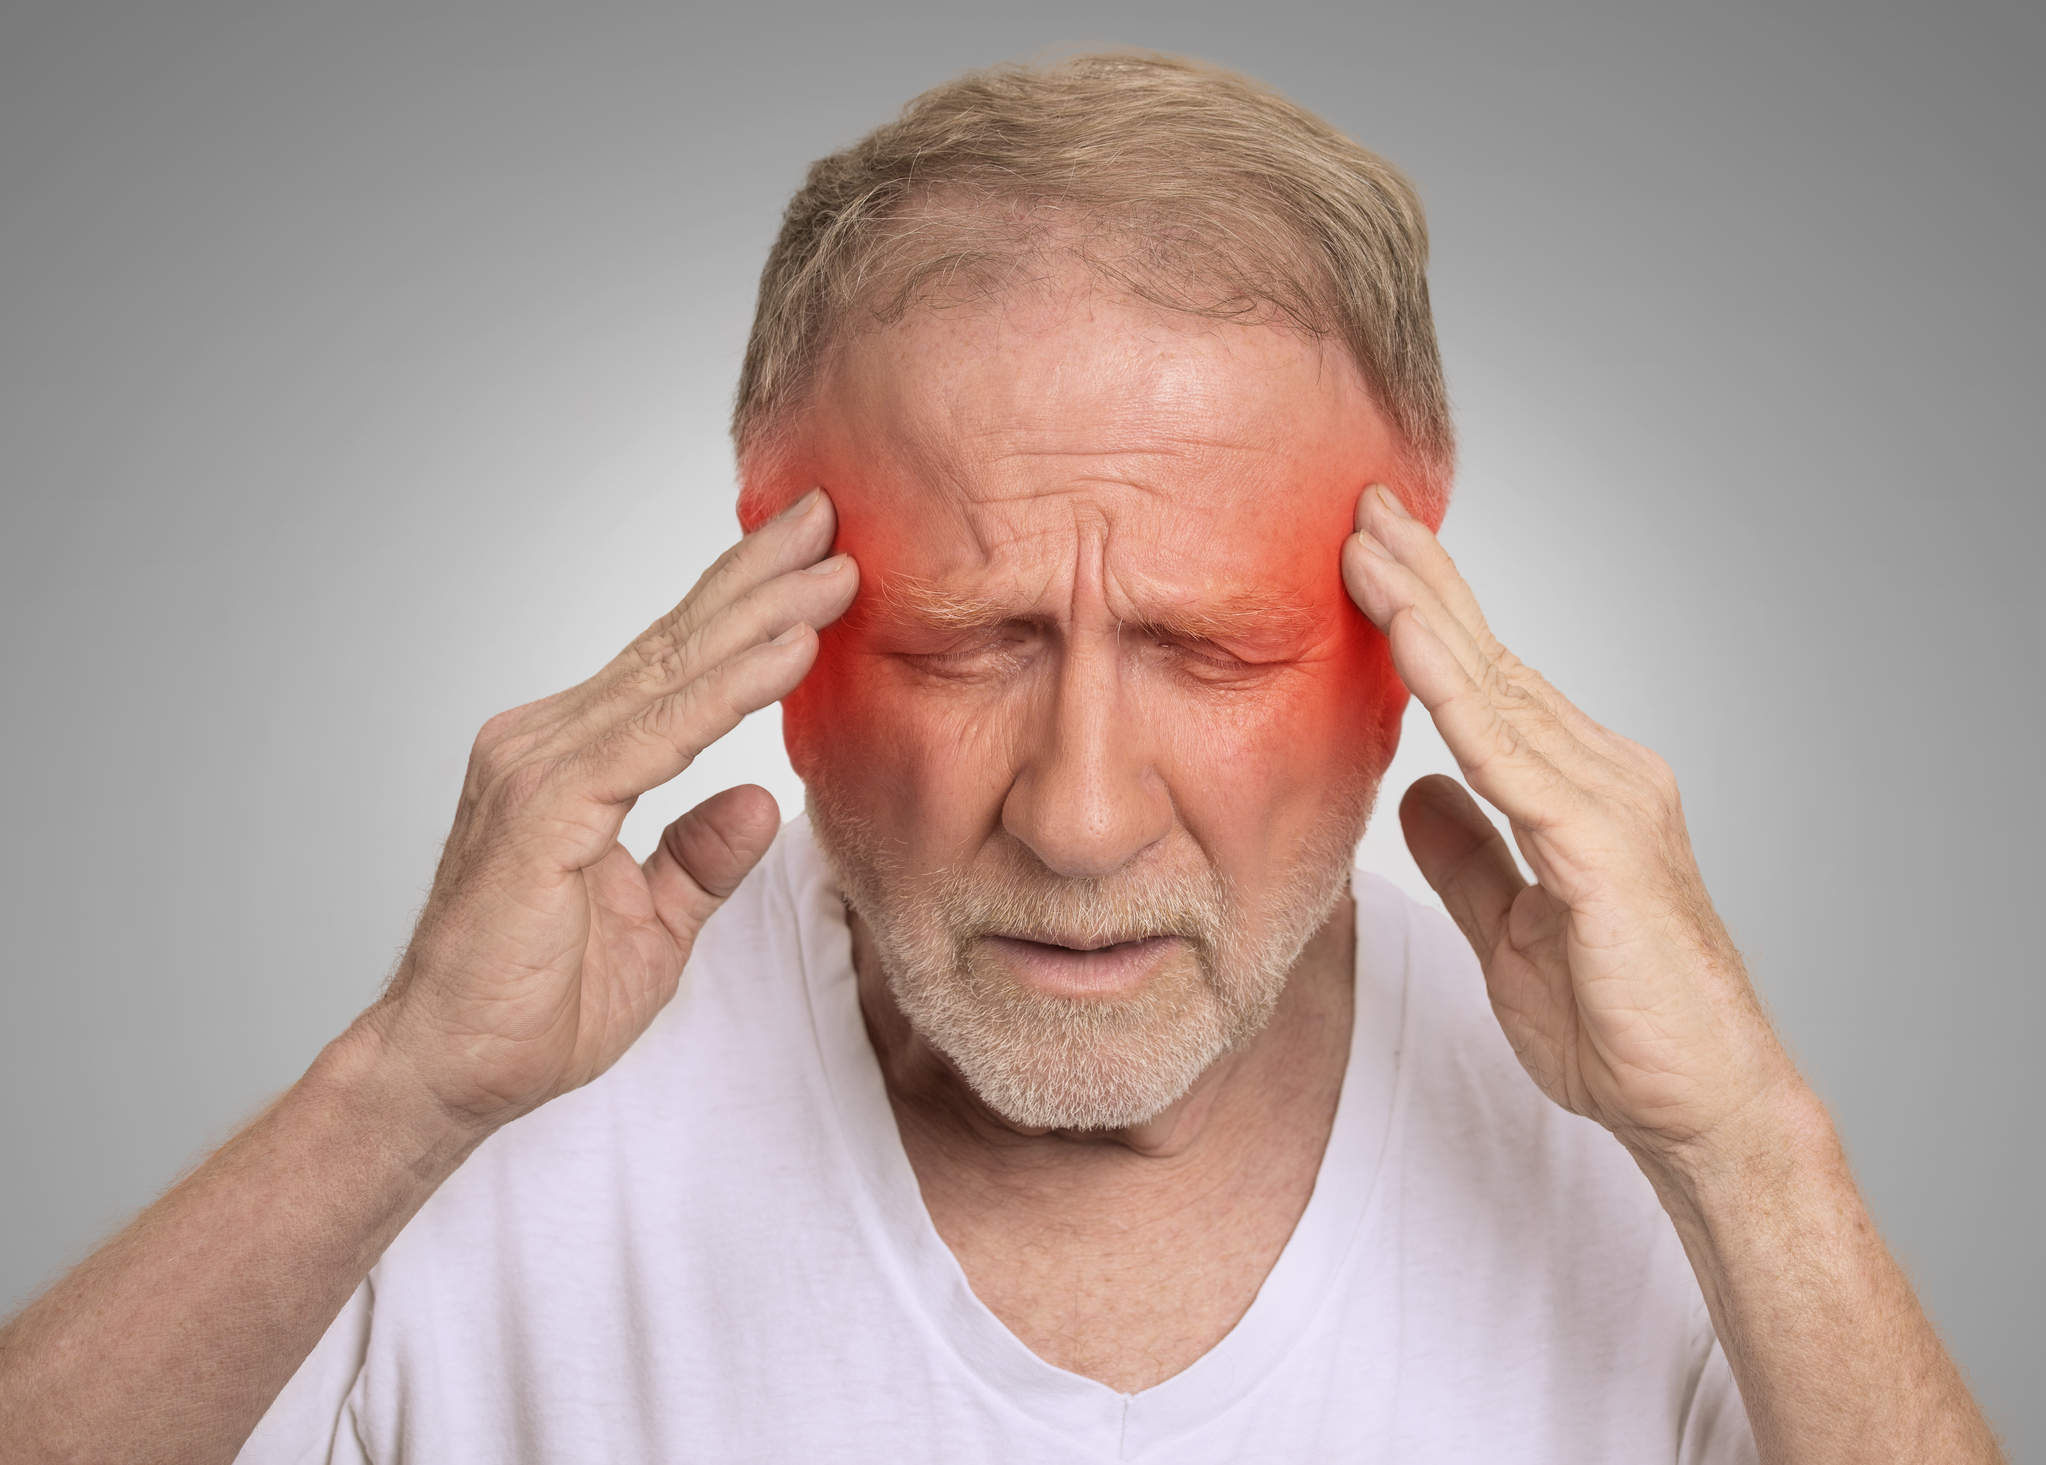 man with migraine rubbing his head with red inflamed areas on temples